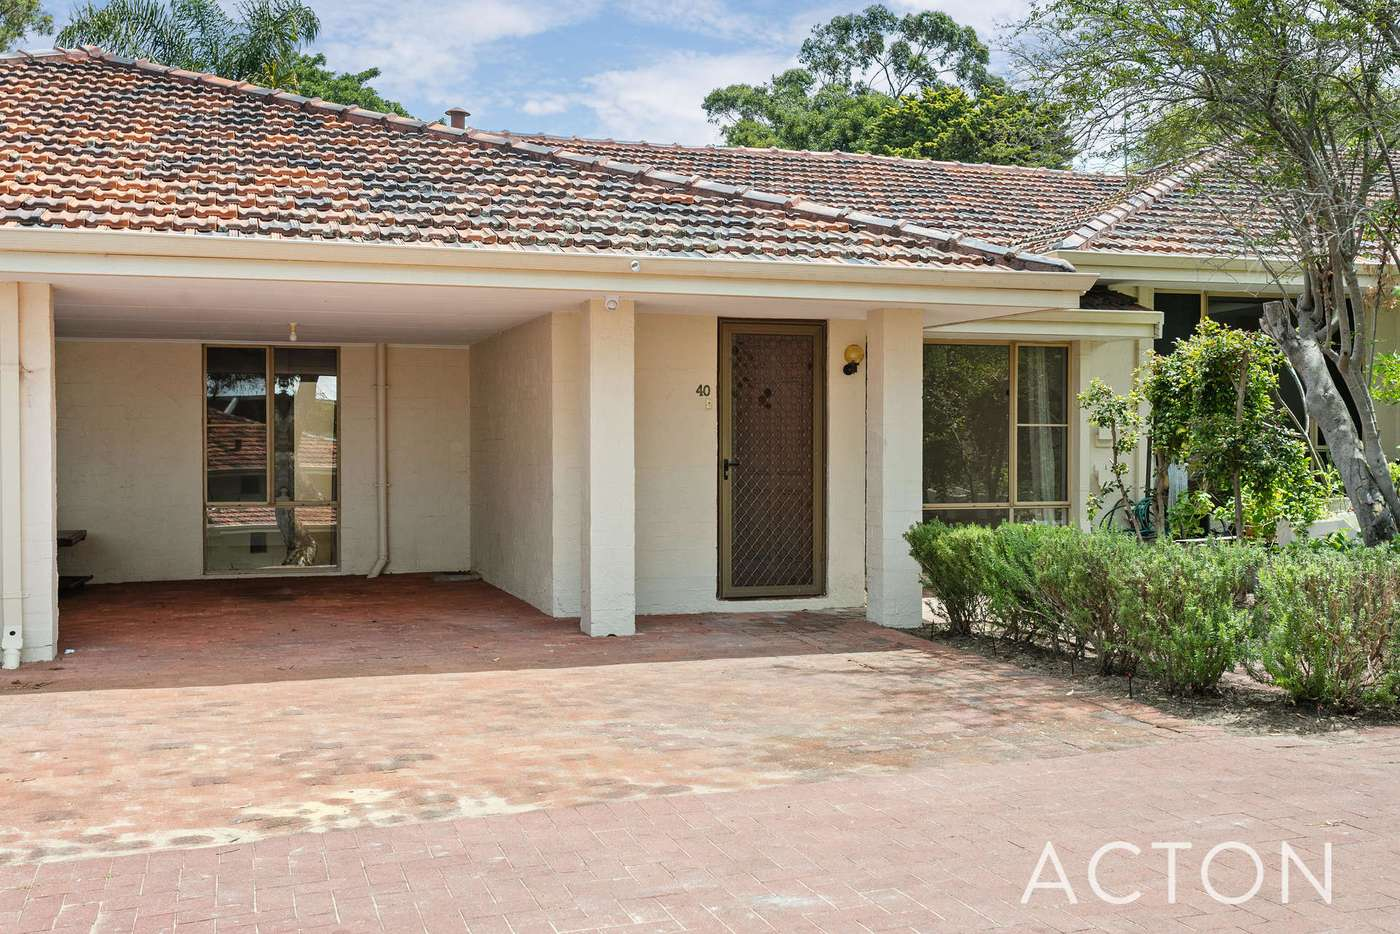 Main view of Homely villa listing, 40 Troy Terrace, Daglish WA 6008